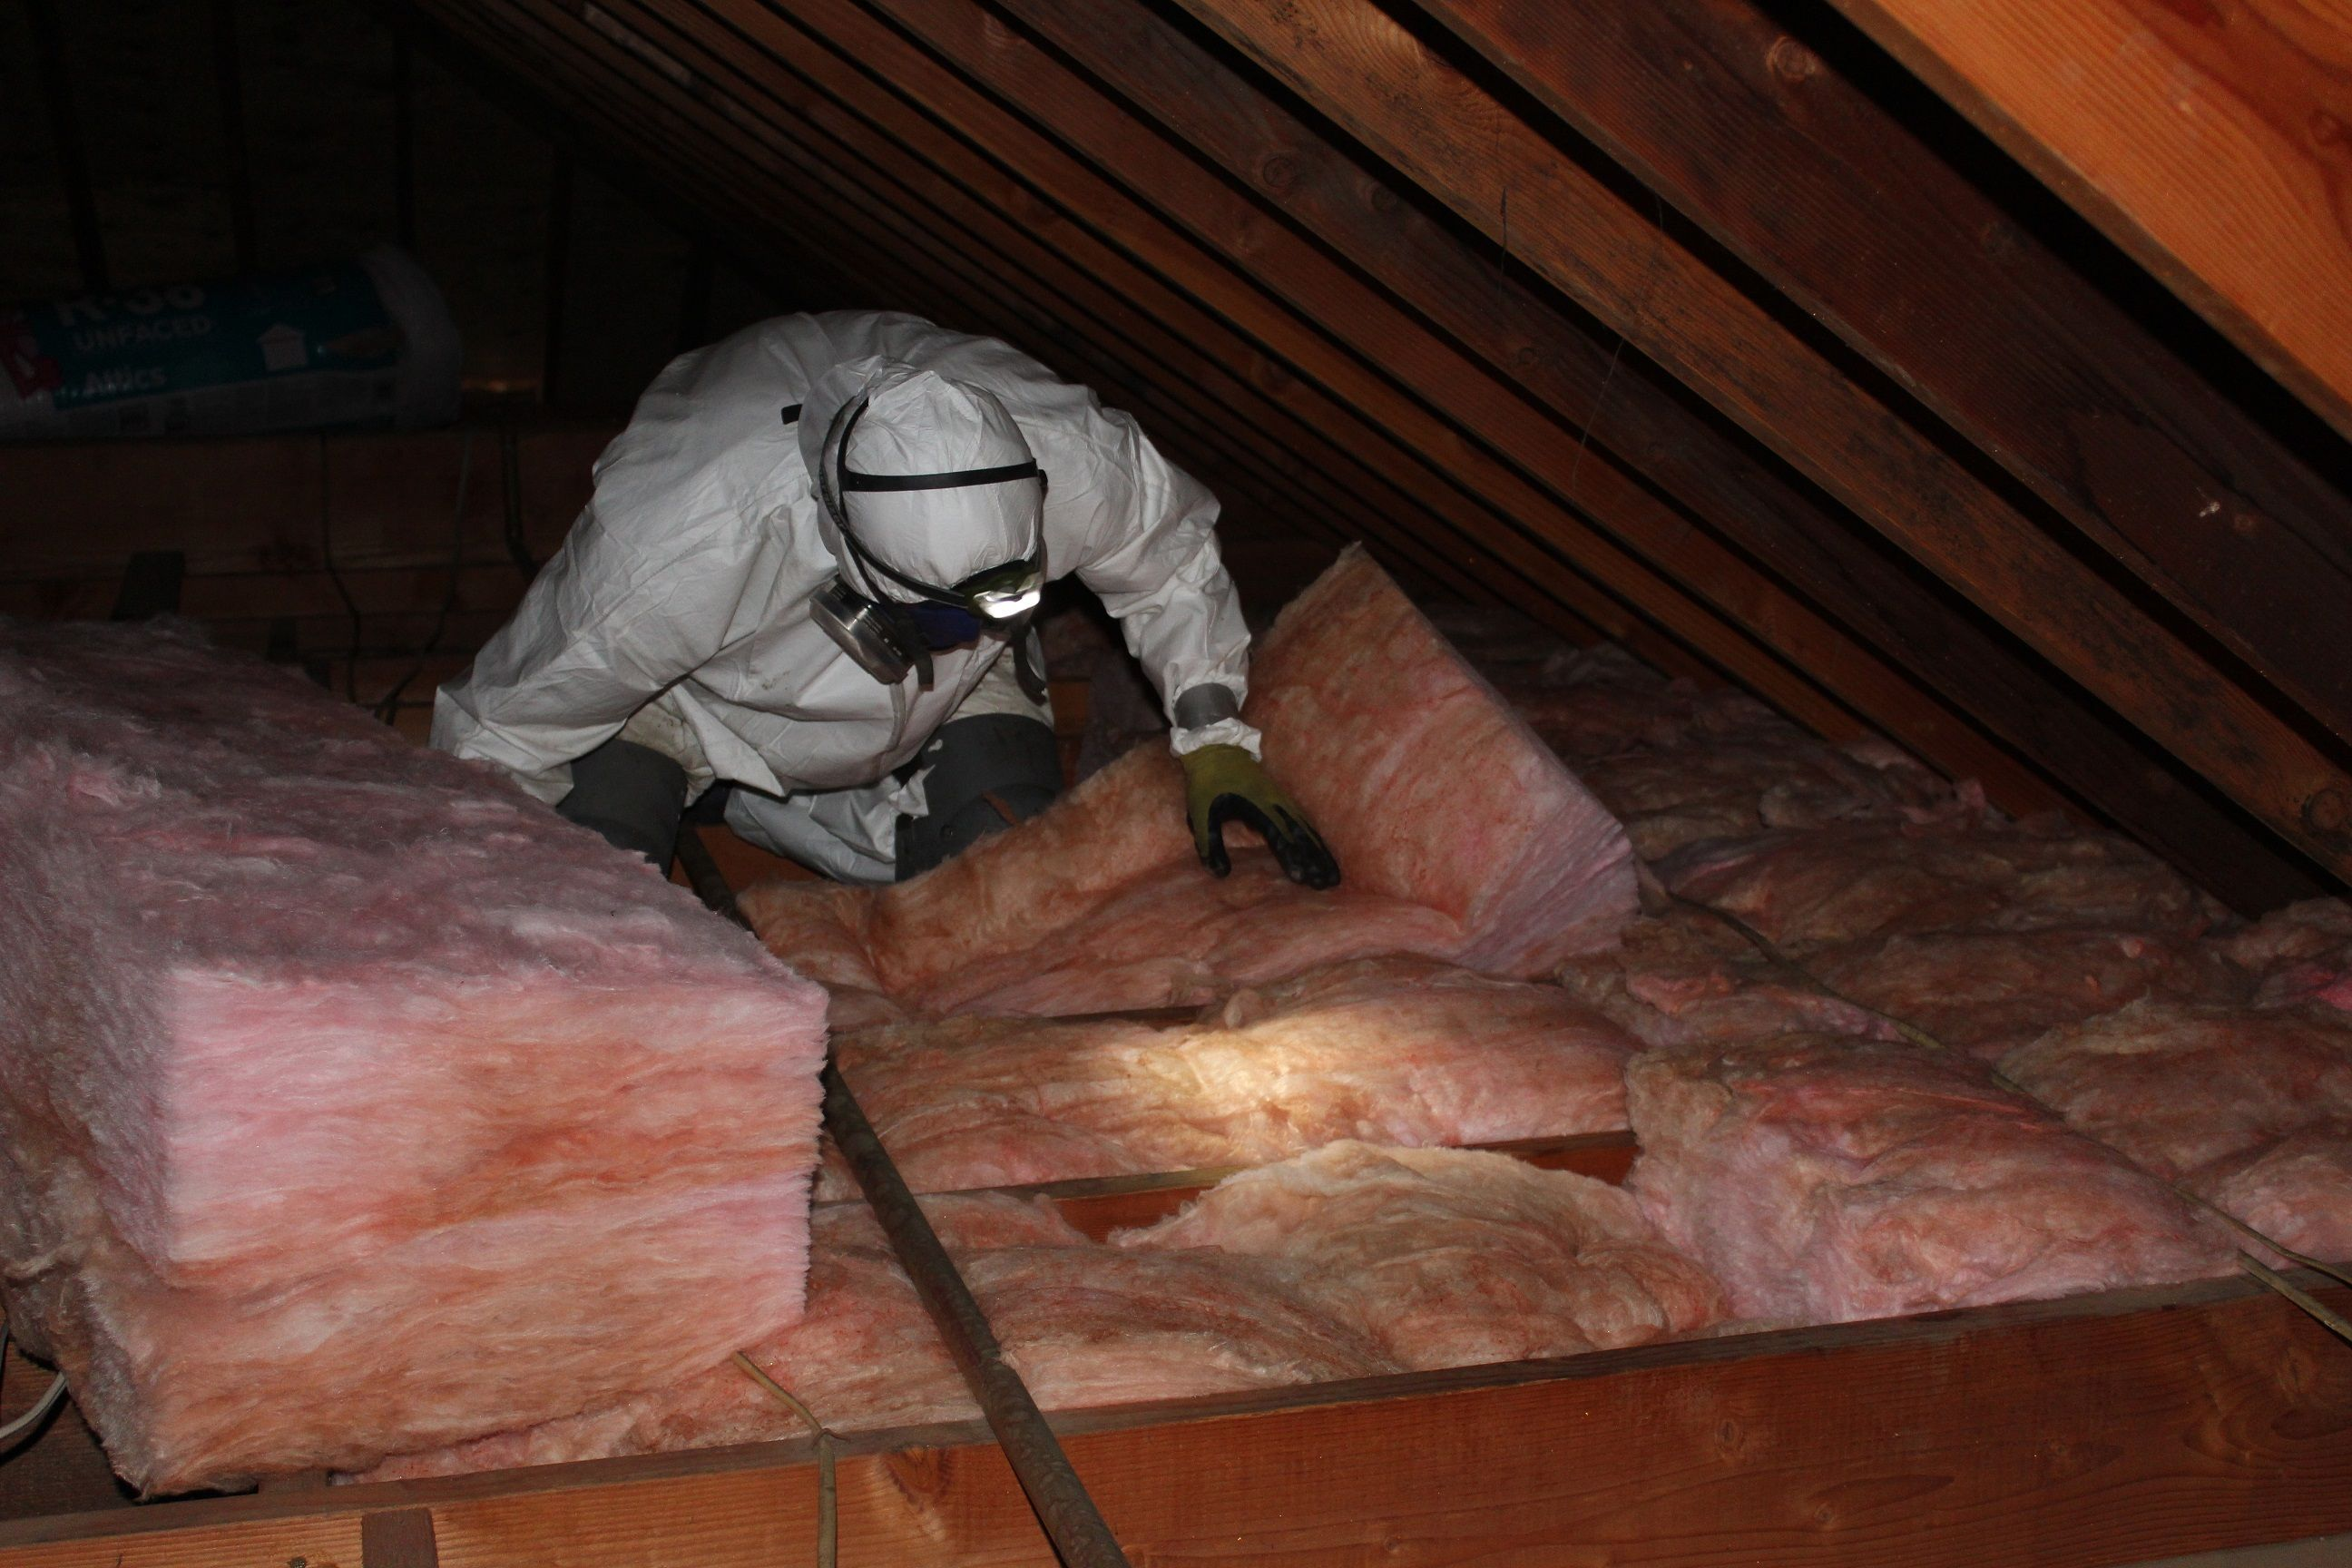 On Top Of New Attic Insulation We Also Offer Attic Cleaning Air Duct Replacement Rodent Proofin Attic Insulation Removal Insulation Removal Attic Insulation